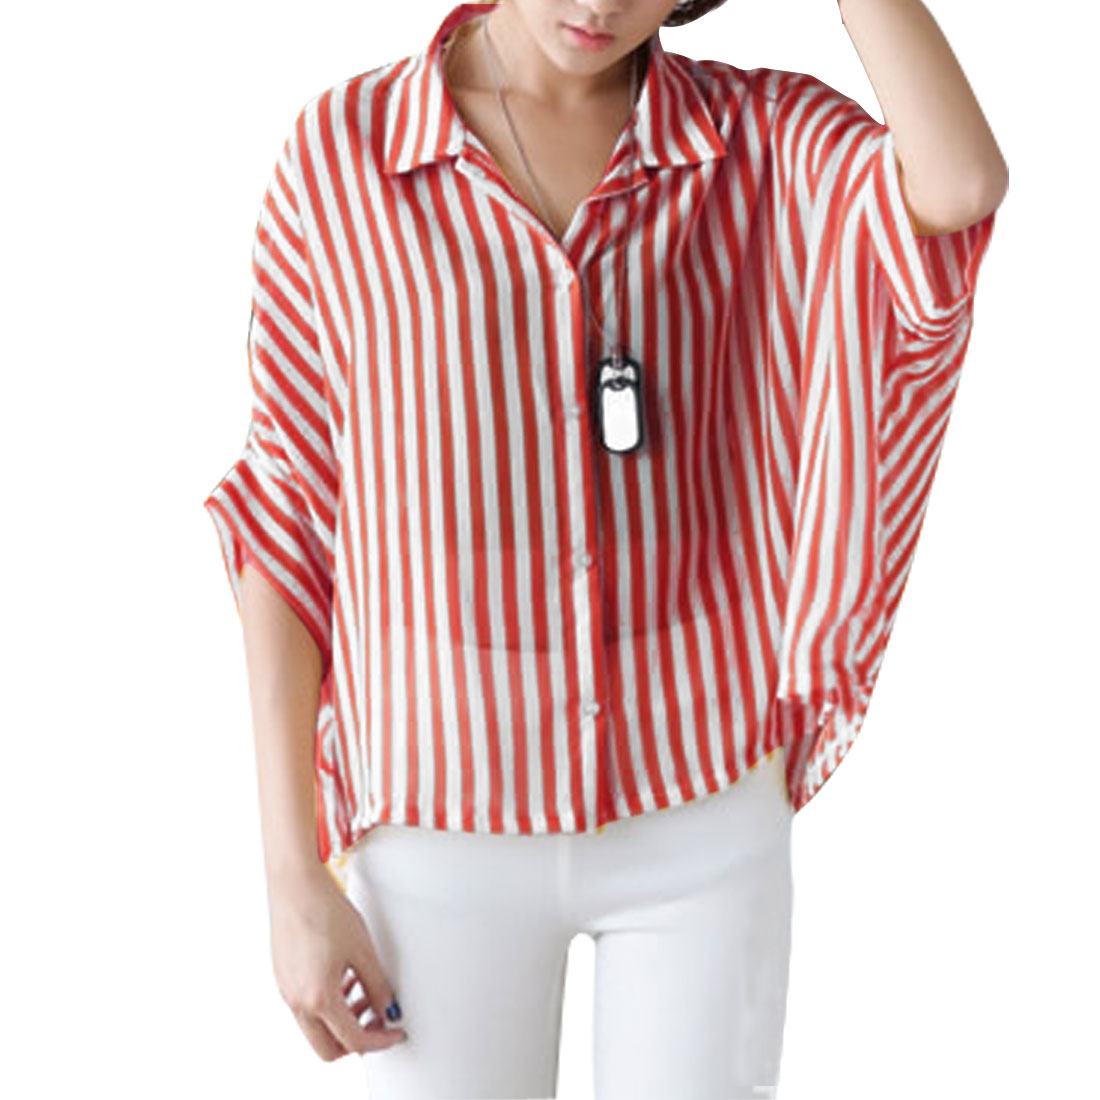 Woman Poit Collar Elbow Batwing Sleeve Button Down Red White Blouse M